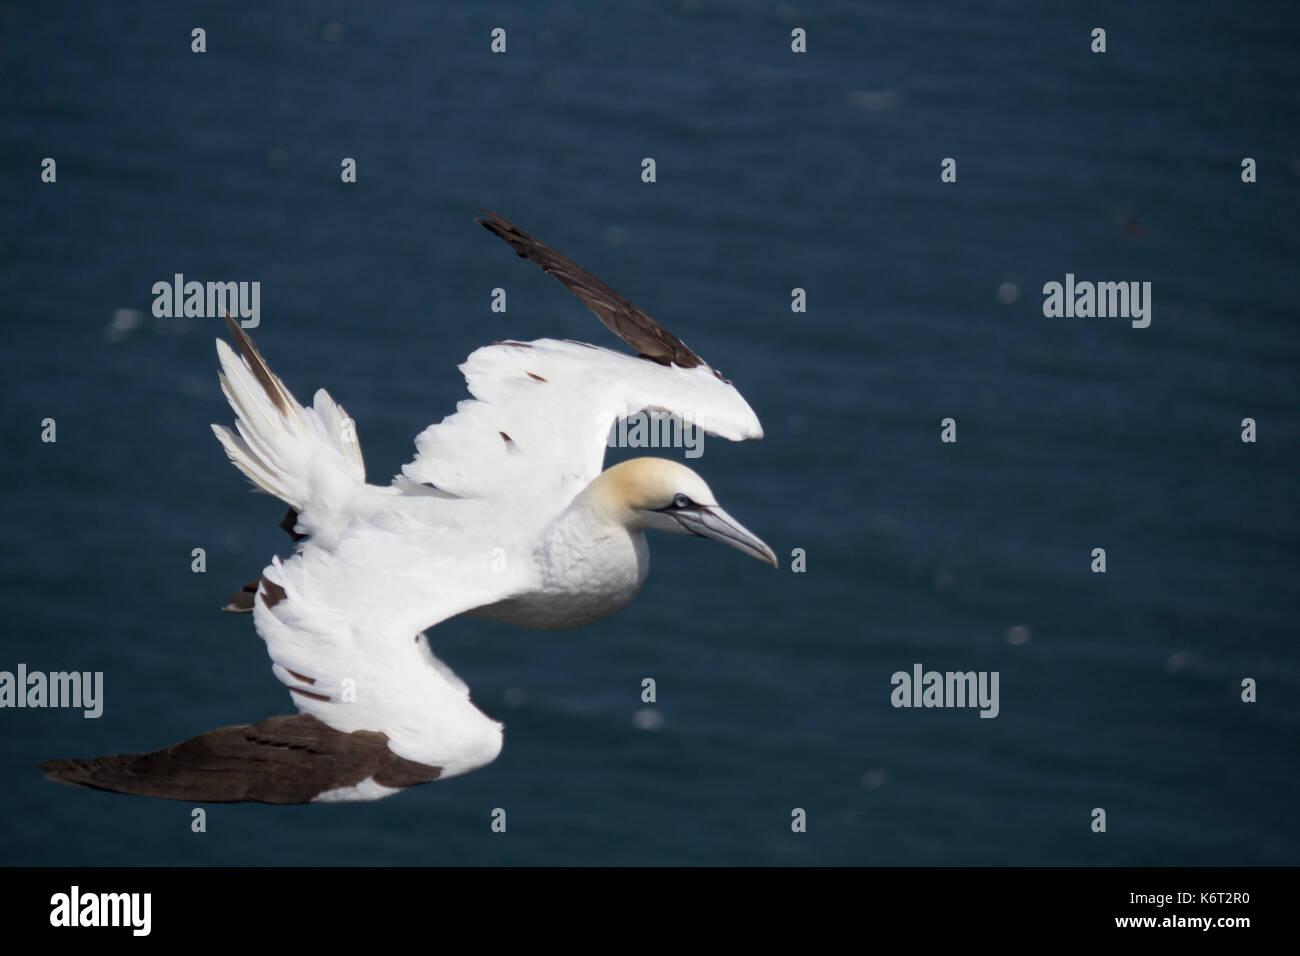 Gannet flying around Bempton cliffs, Flamborough, North Yorkshire. The gannet was flying around the cliffs on a windy day, just catching the wind ! - Stock Image